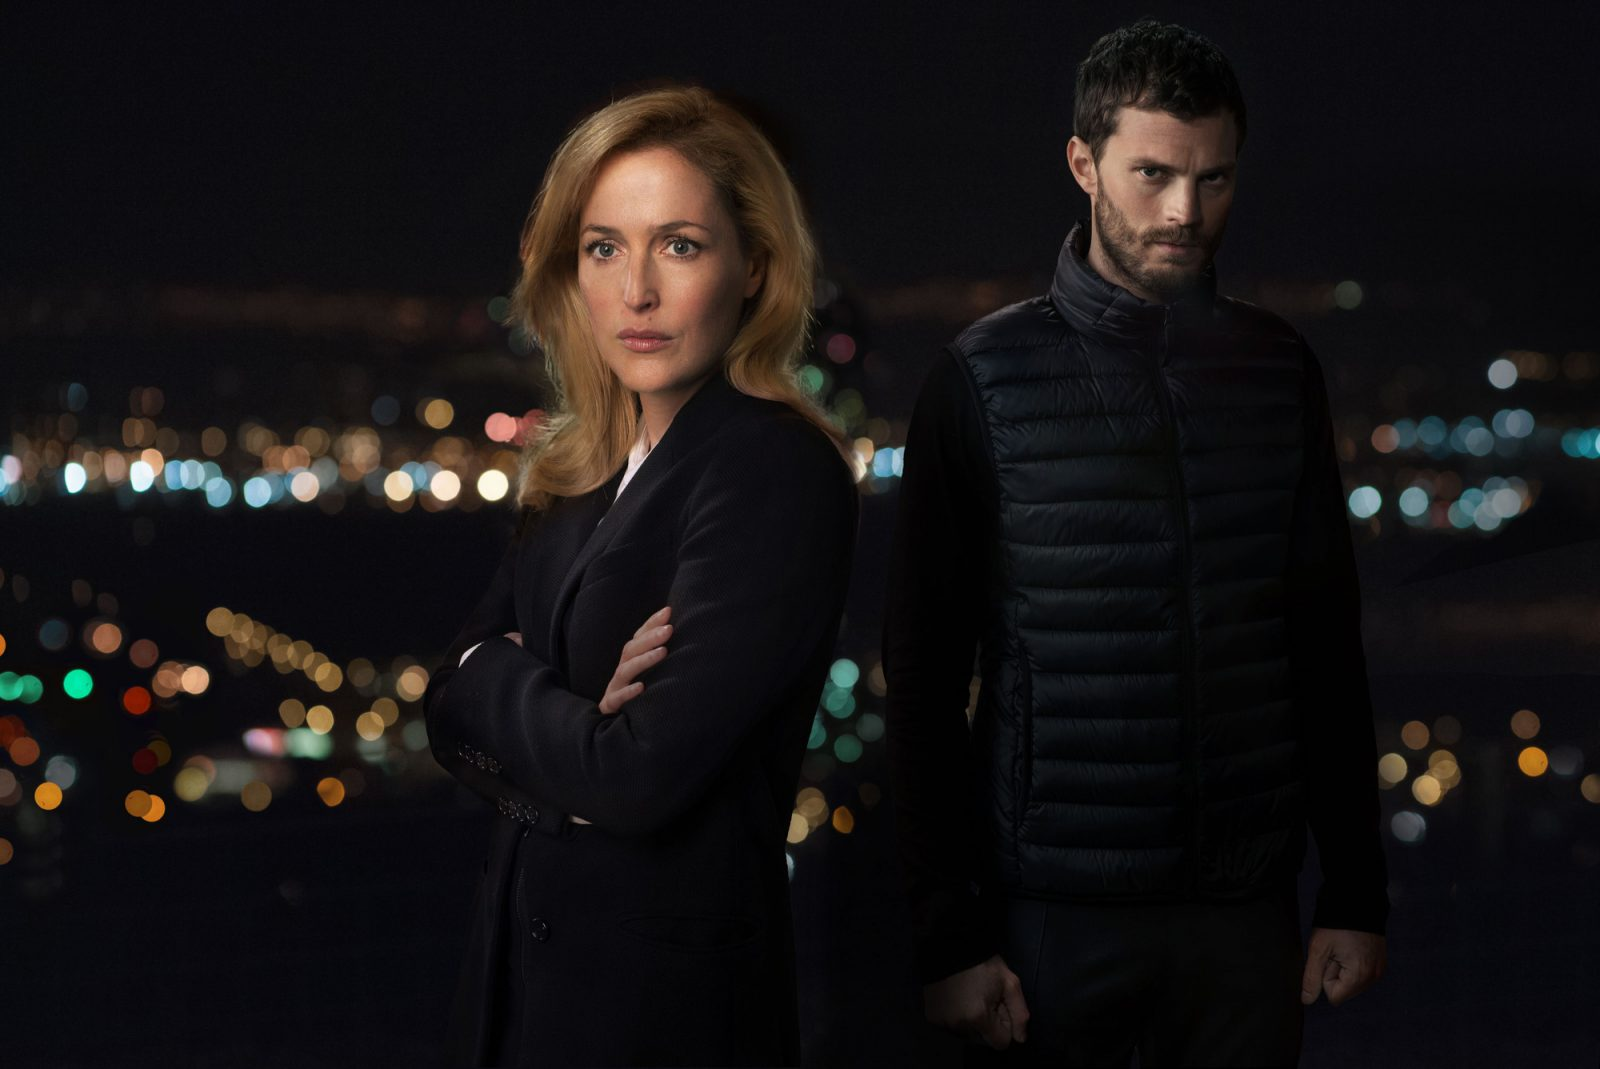 tv review: the fall, series 2 finale, bbc two;